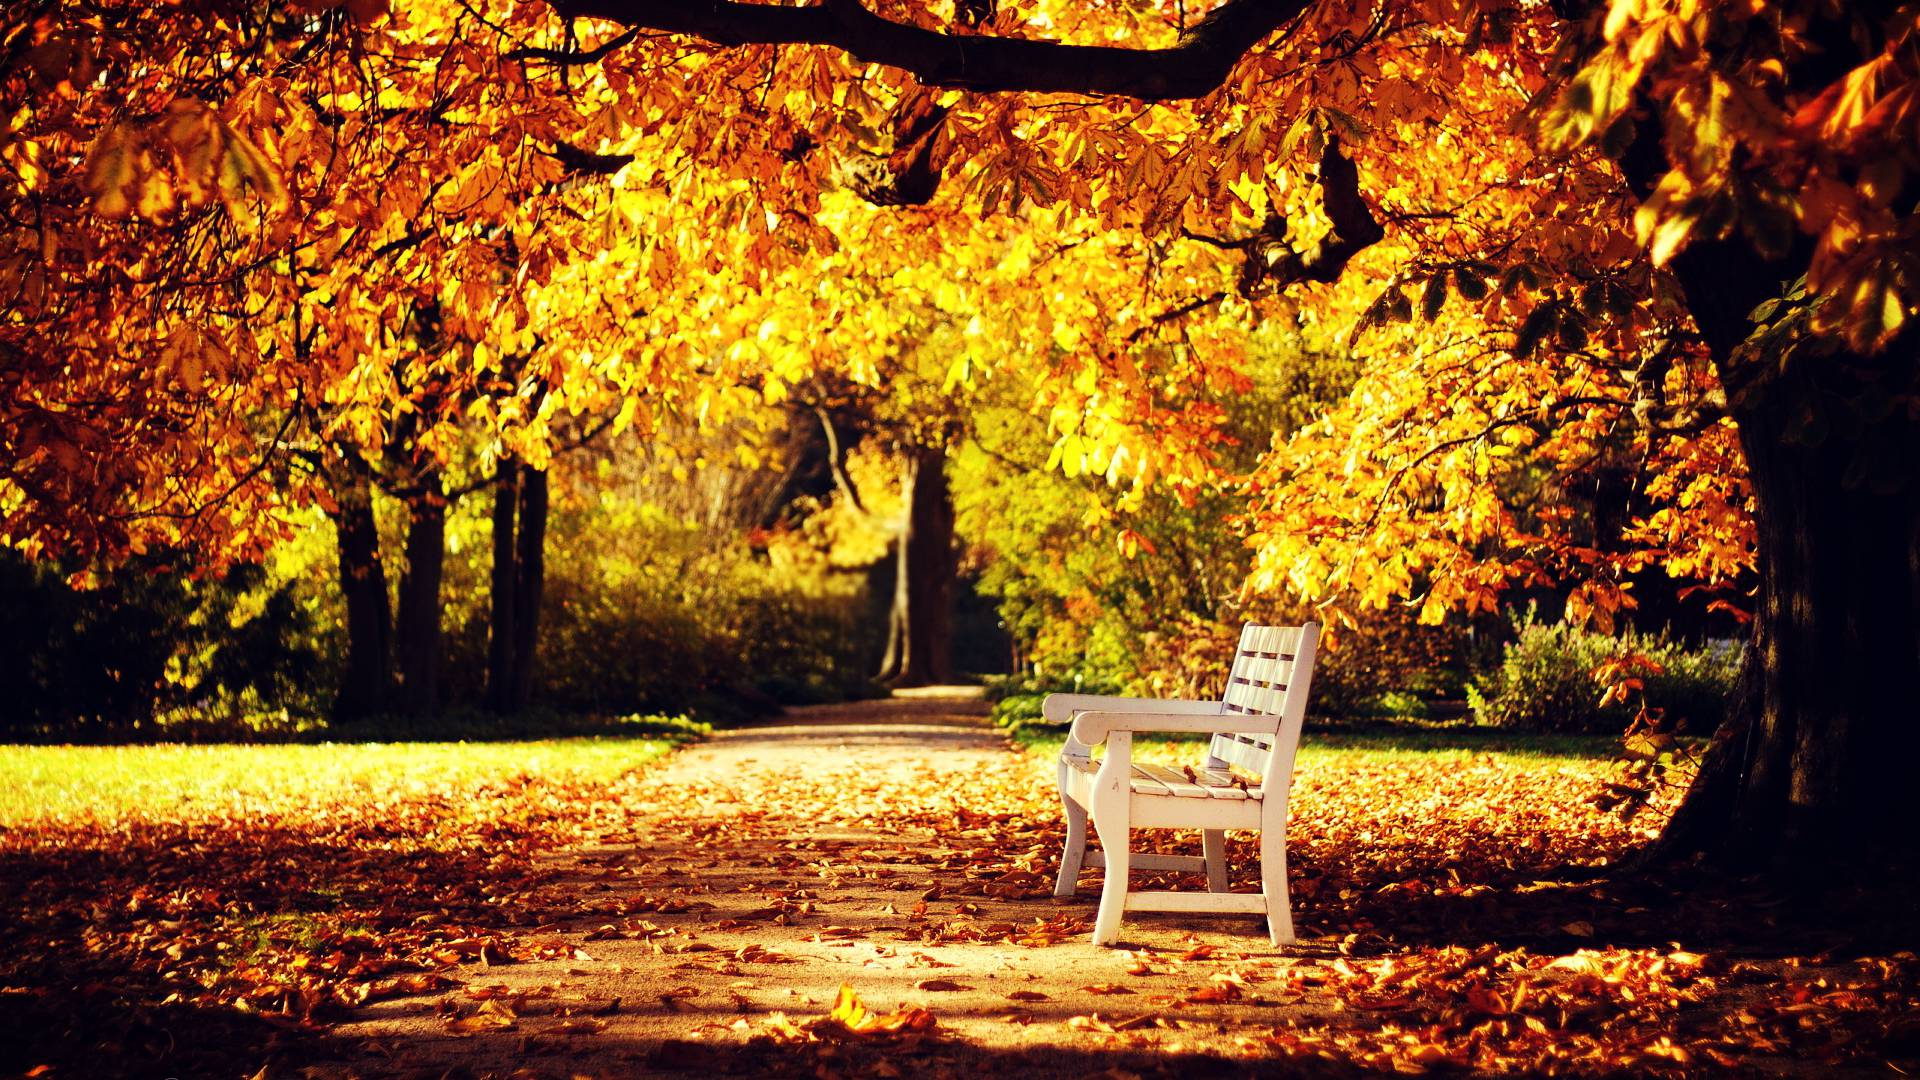 42 Autumn Backgrounds Download Free Stunning Hd: HD Autumn Wallpapers